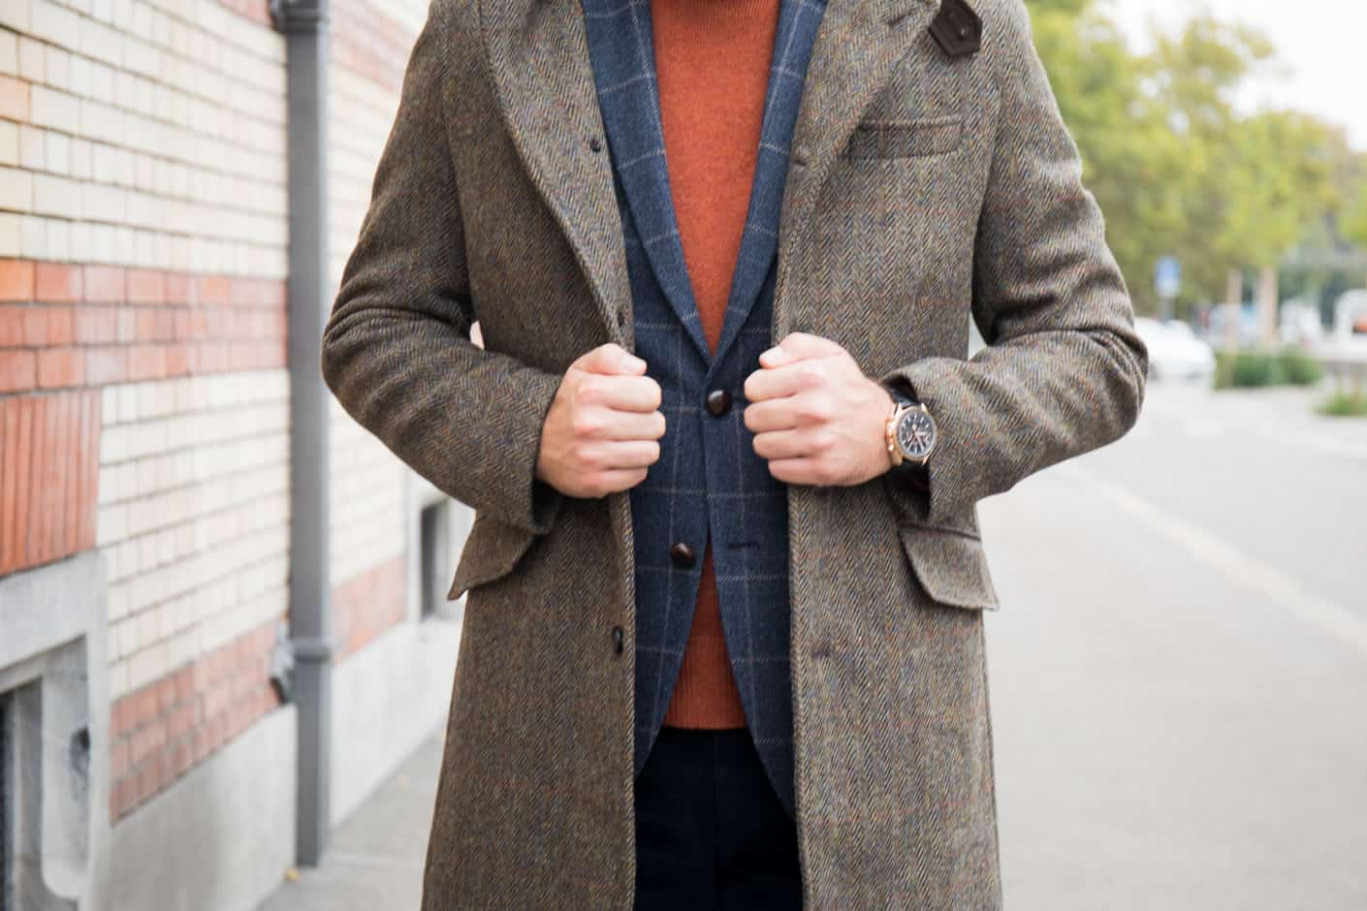 english fashion how to get dressed right a gentleman's world englische mode online shops | Englische Mode Online Shops